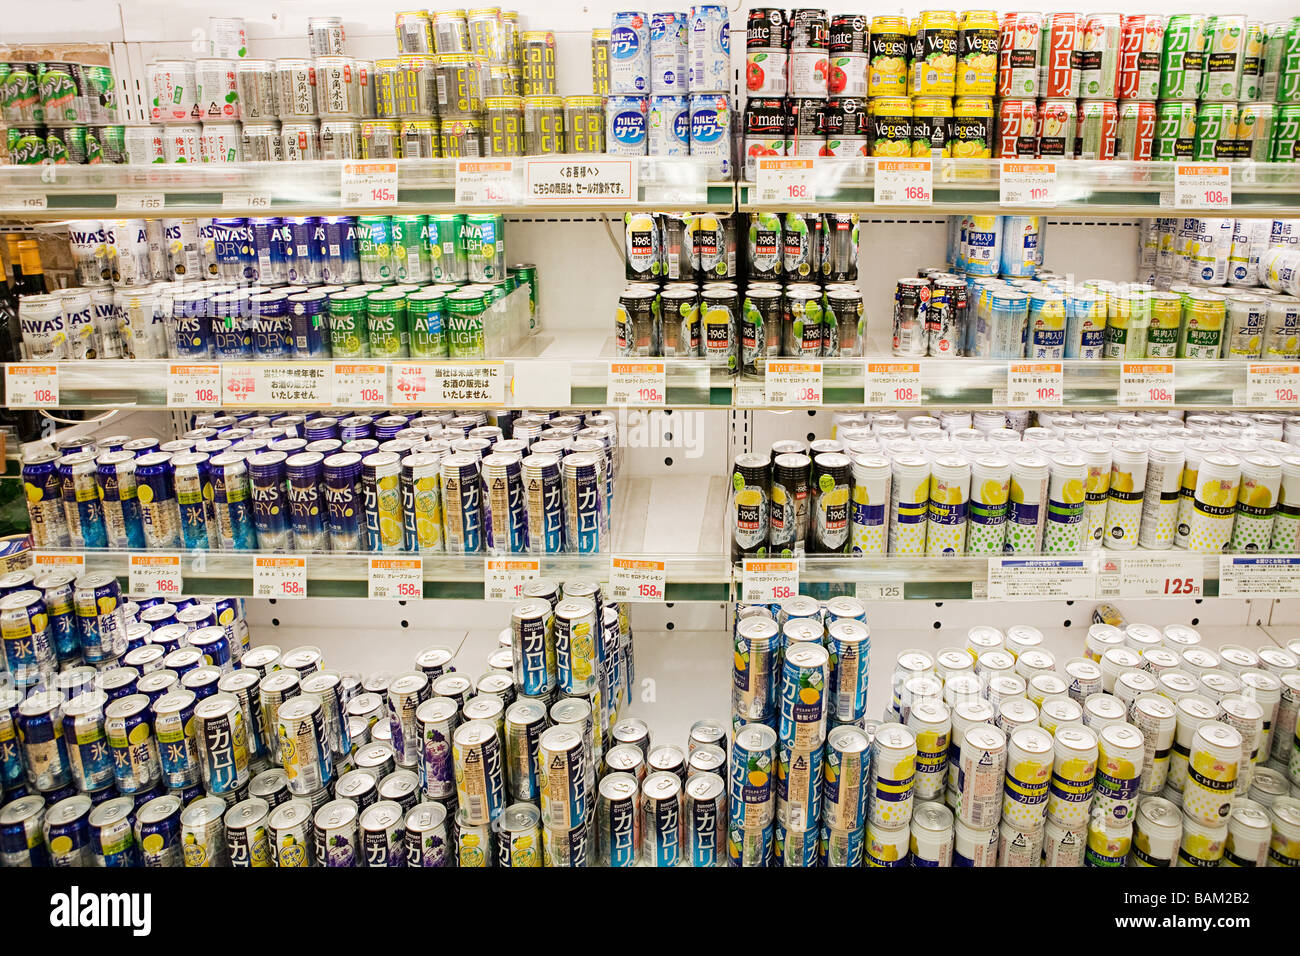 Cans of chuhai in a supermarket fridge - Stock Image